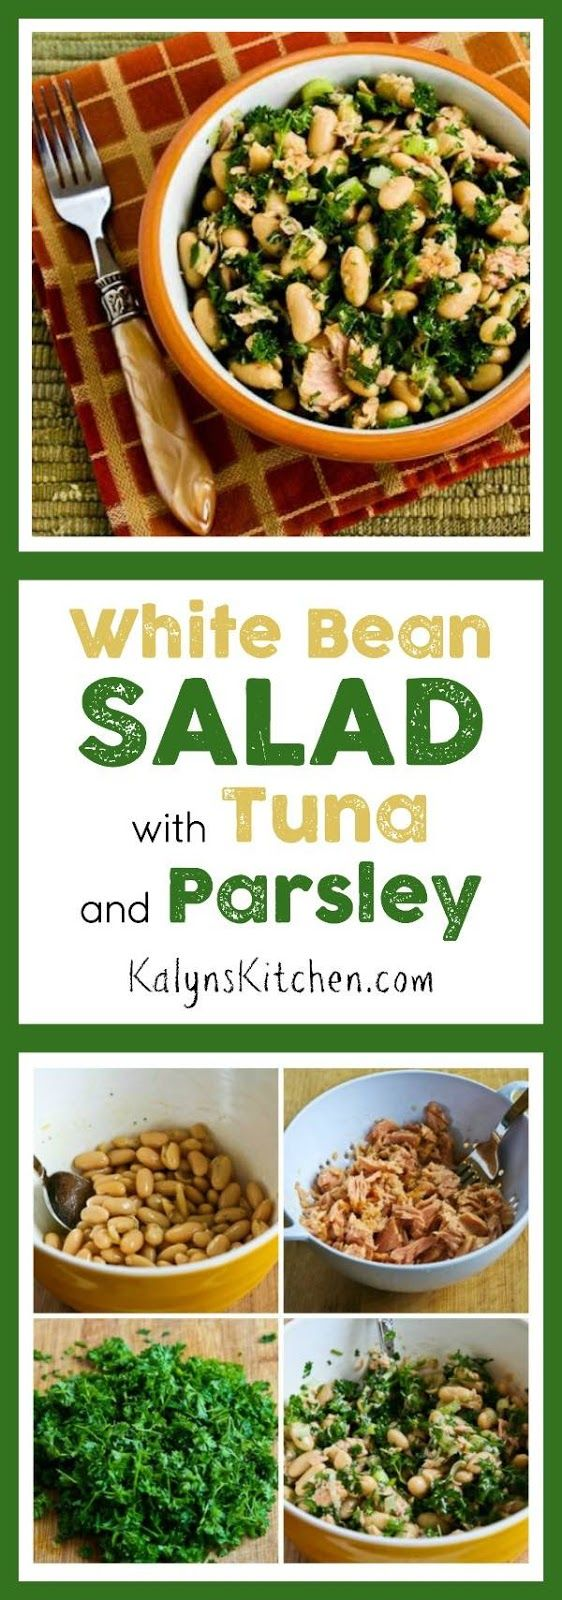 ... Recipes] on Pinterest | South beach diet, Feta and Red bell peppers